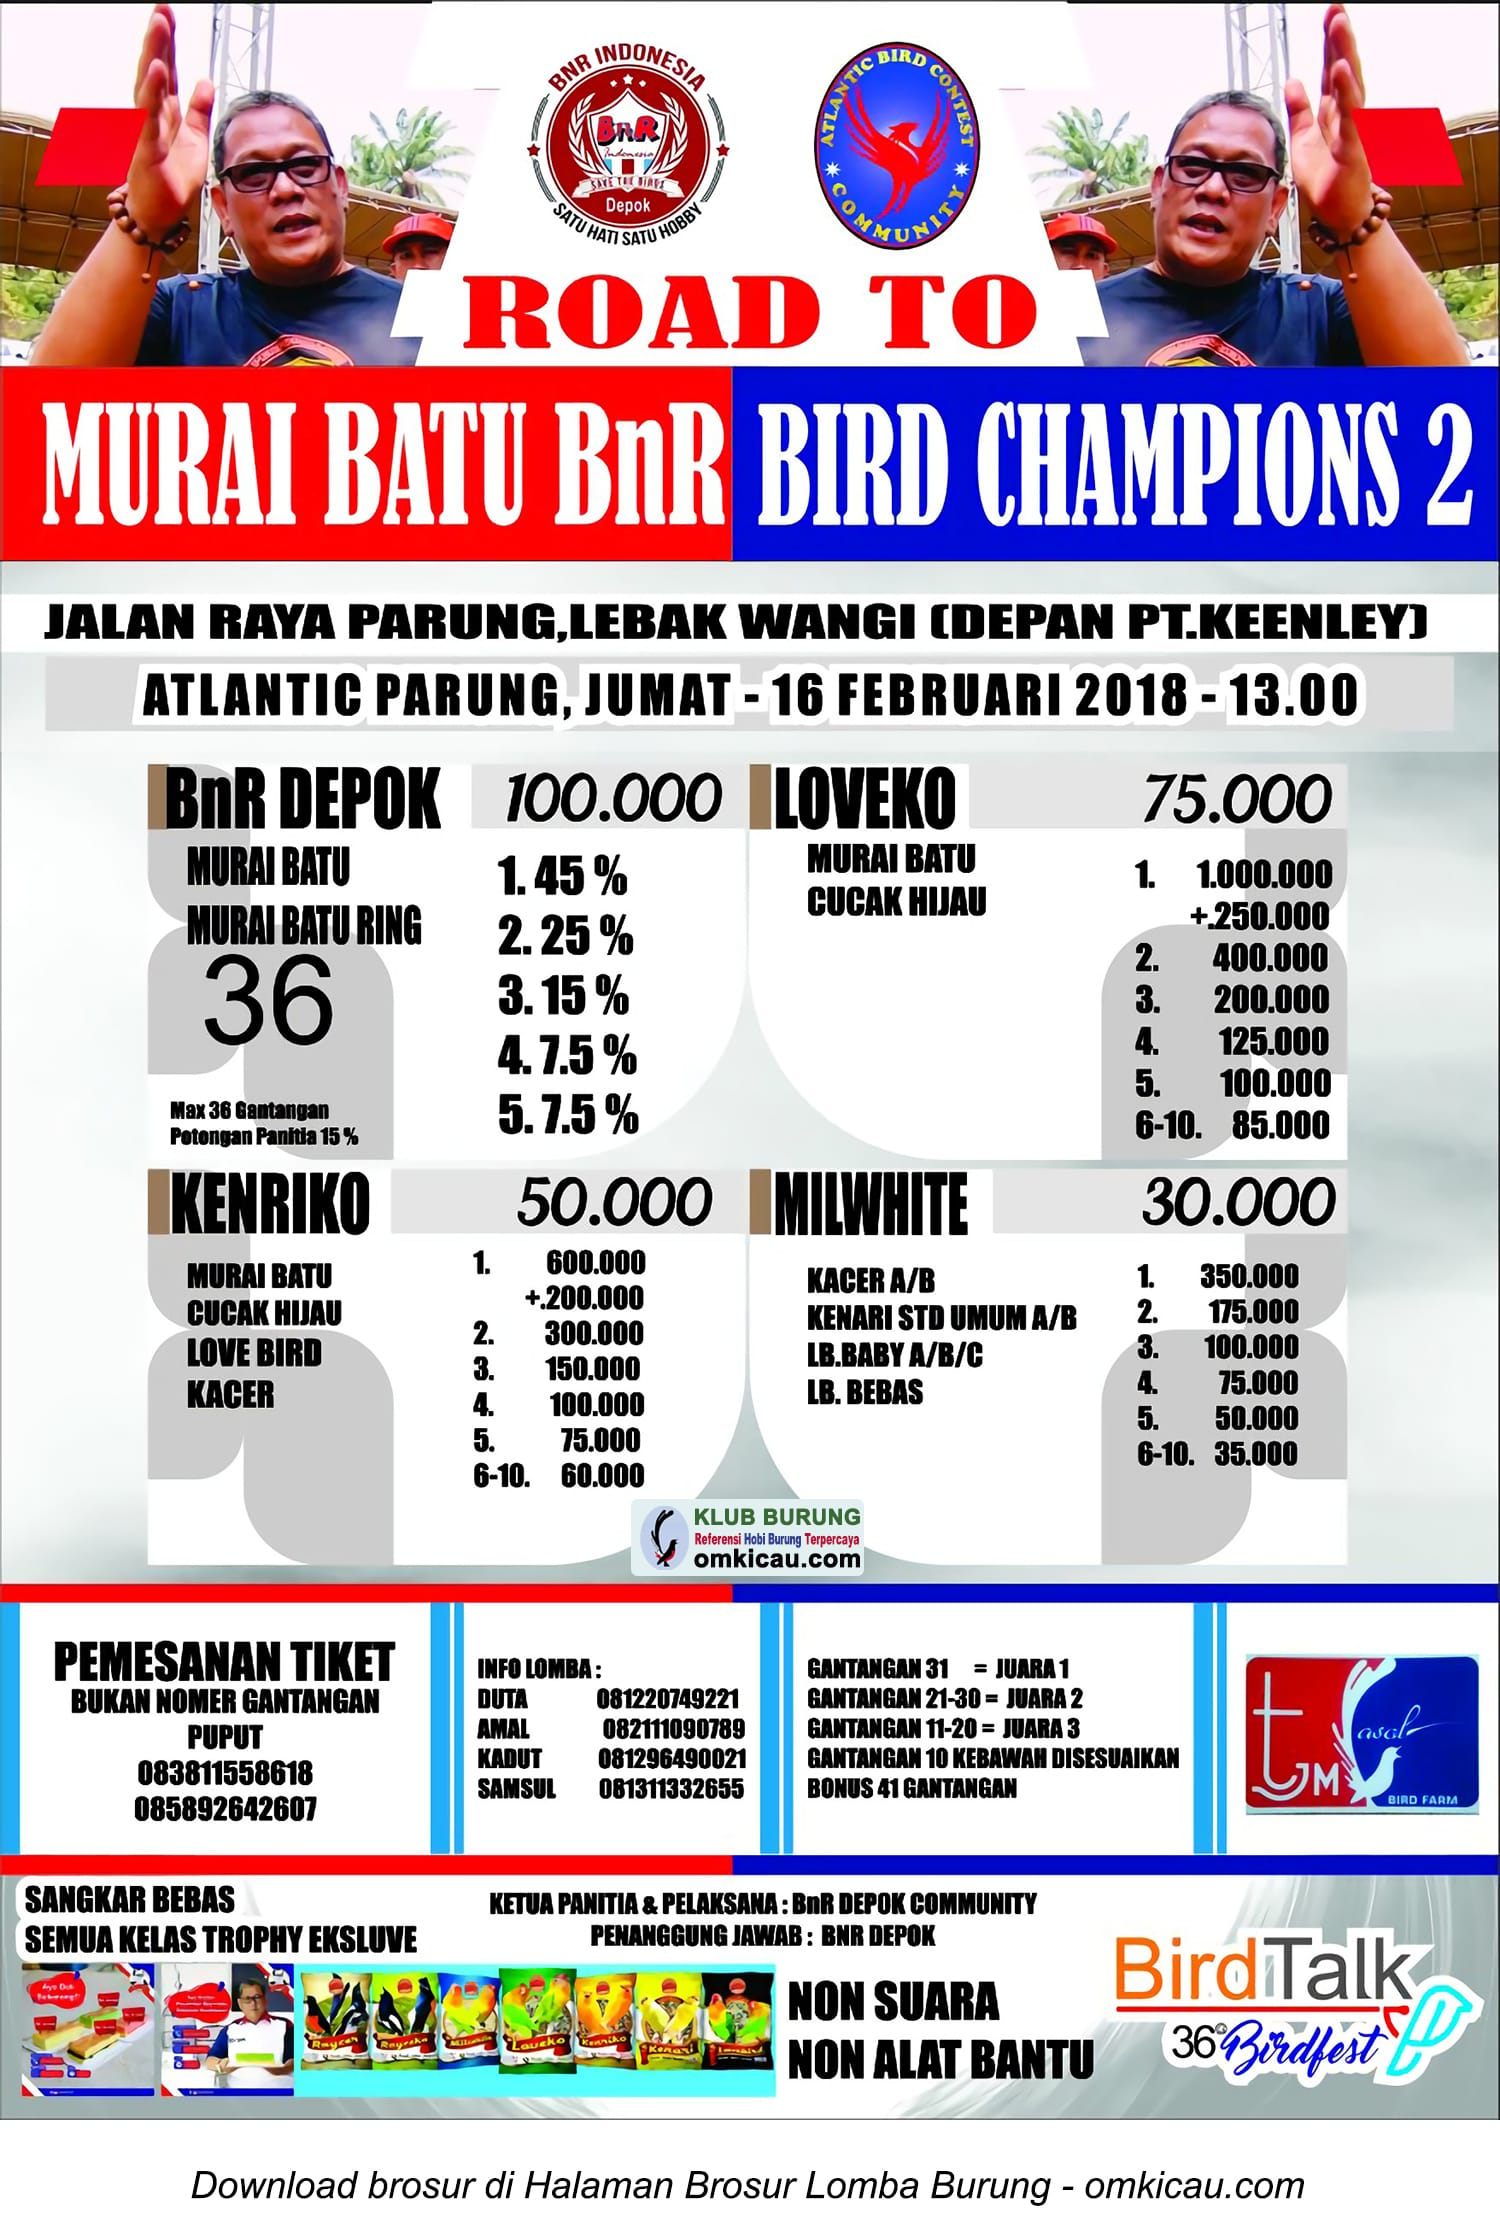 Road to Murai Batu BnR Award